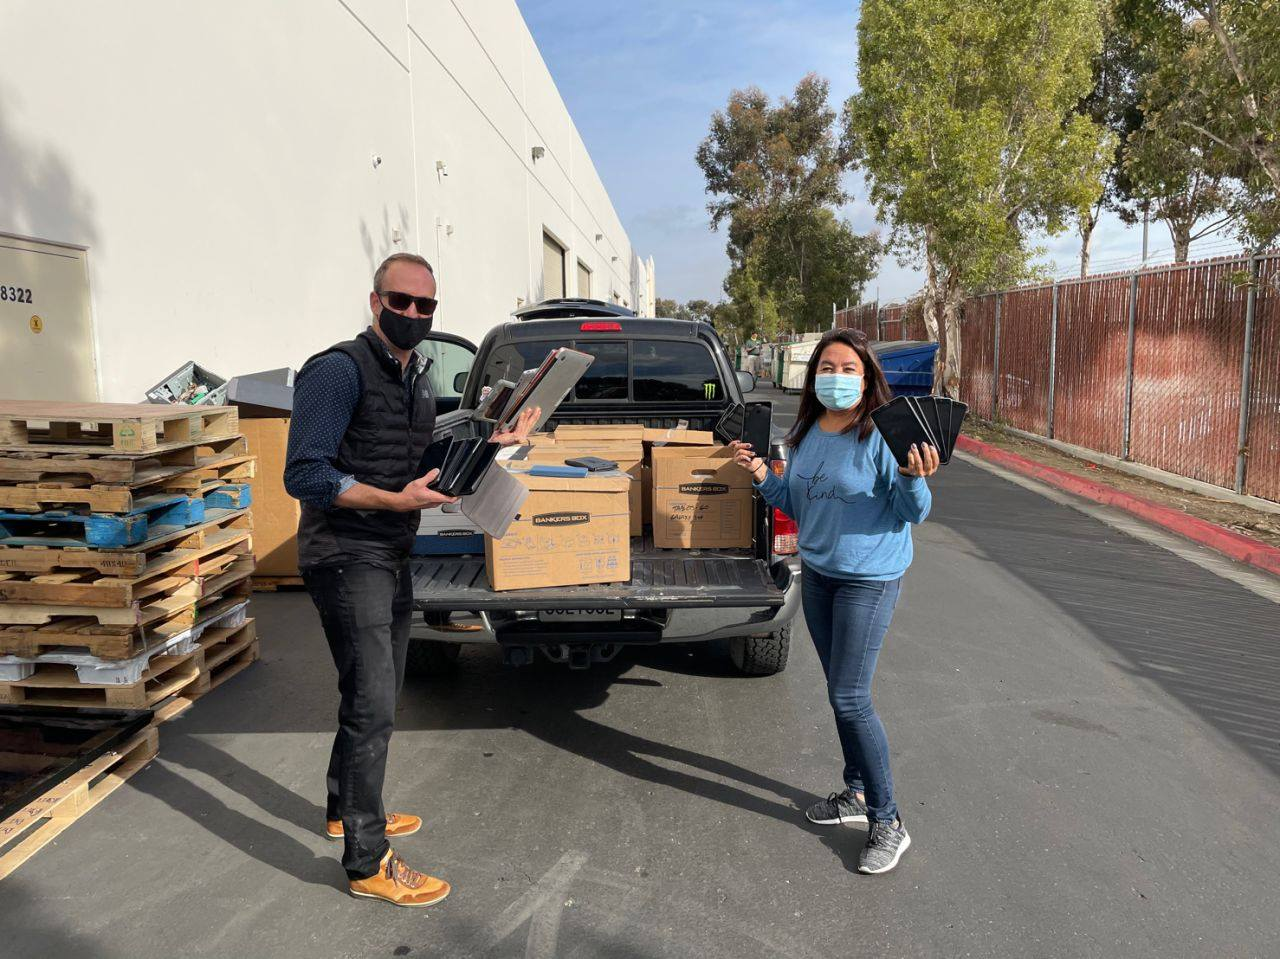 Jeff Monday (L), Qualcomm Vice President of Sales, helps Vida Roozen (R) of Creative Channel Services unload over 300 computers, tablets, headphones, monitors, and printers that Creative Channel Services, graciously donated.